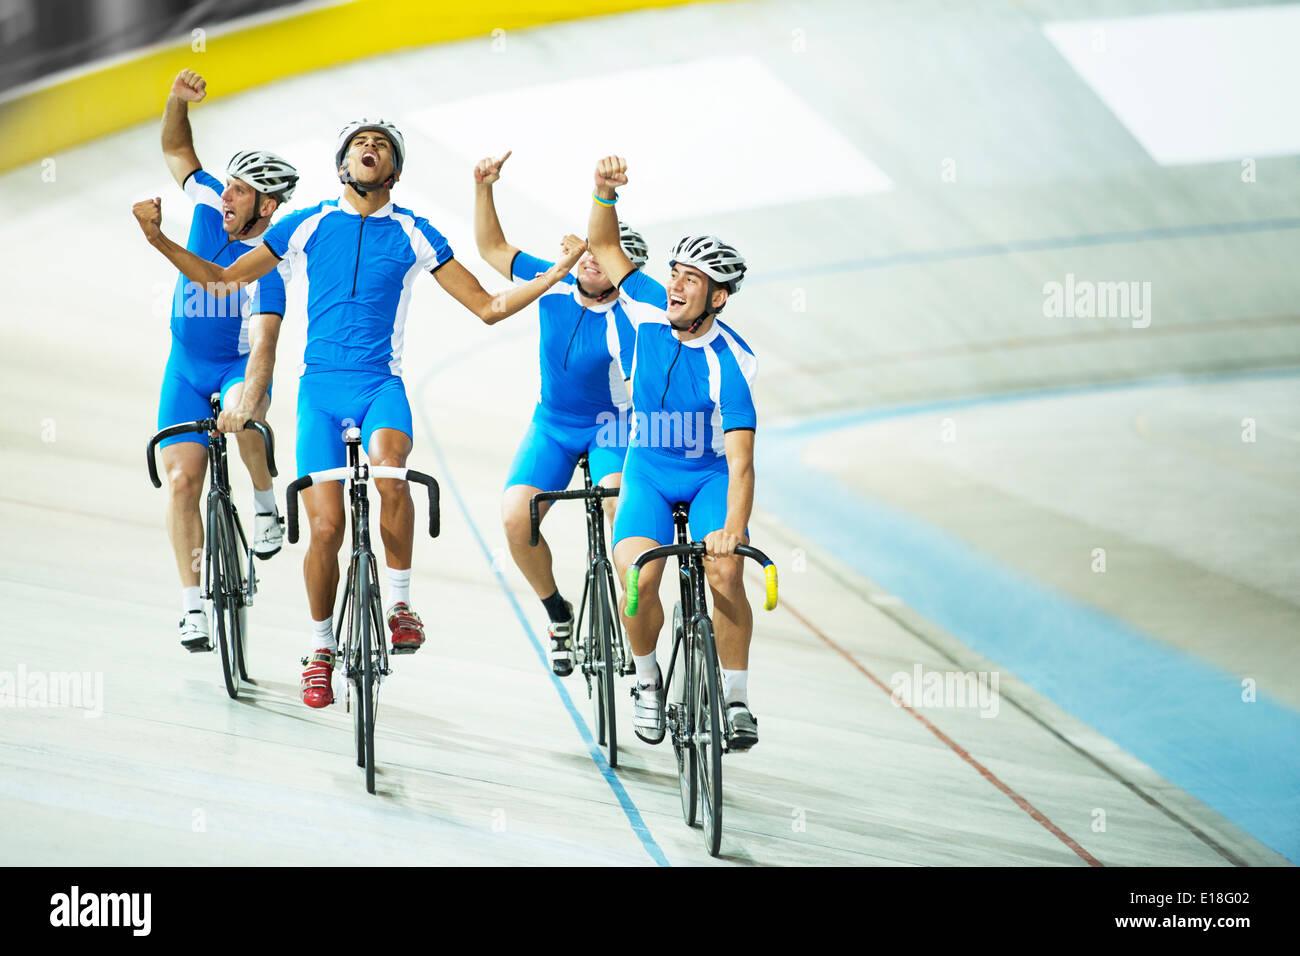 Track cycling team celebrating on track - Stock Image